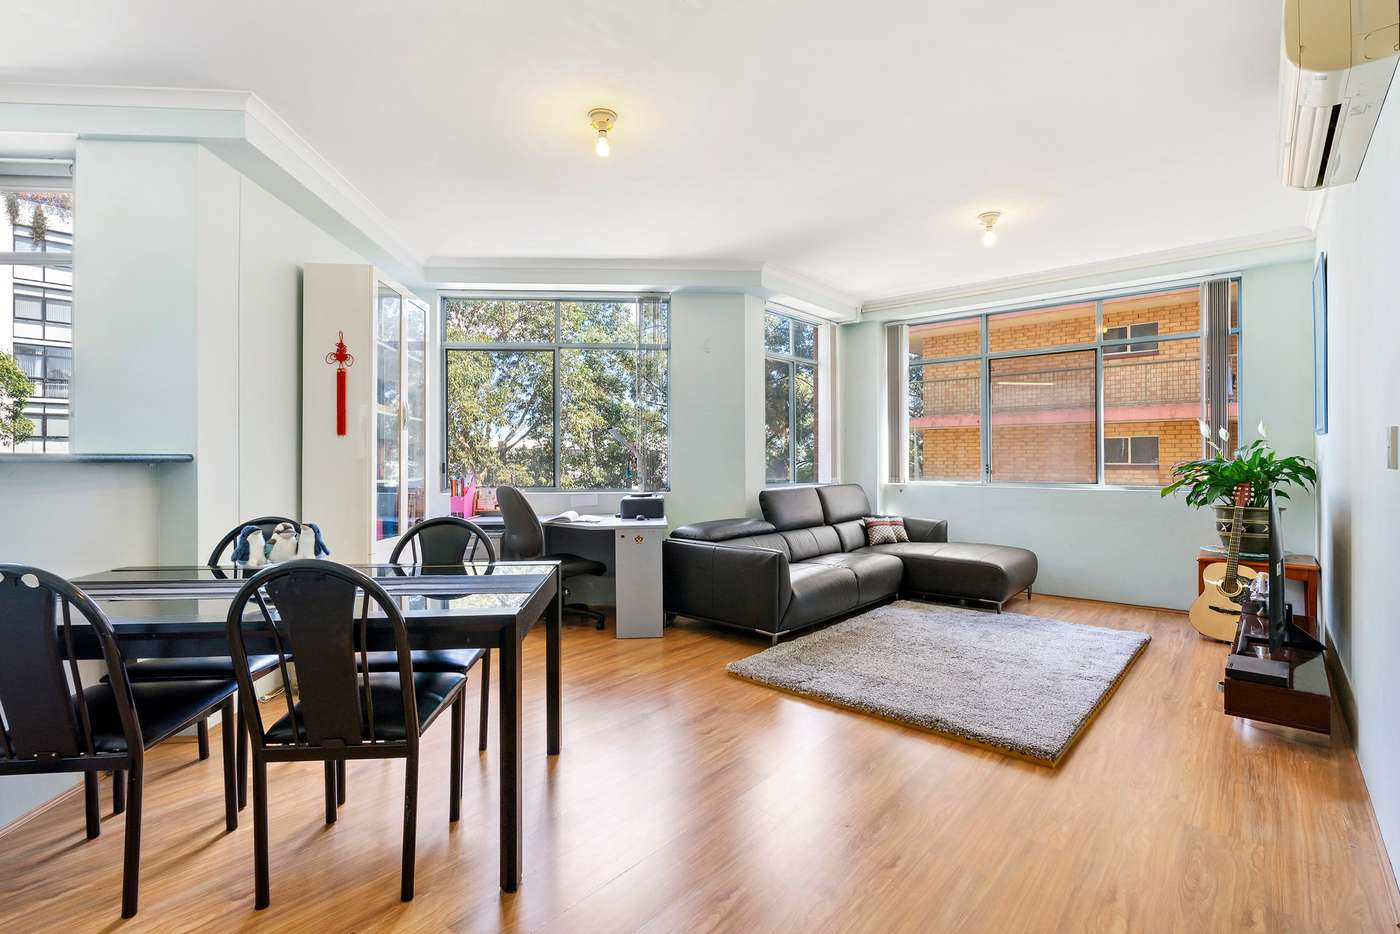 Main view of Homely apartment listing, 21/1 Good Street, Parramatta NSW 2150